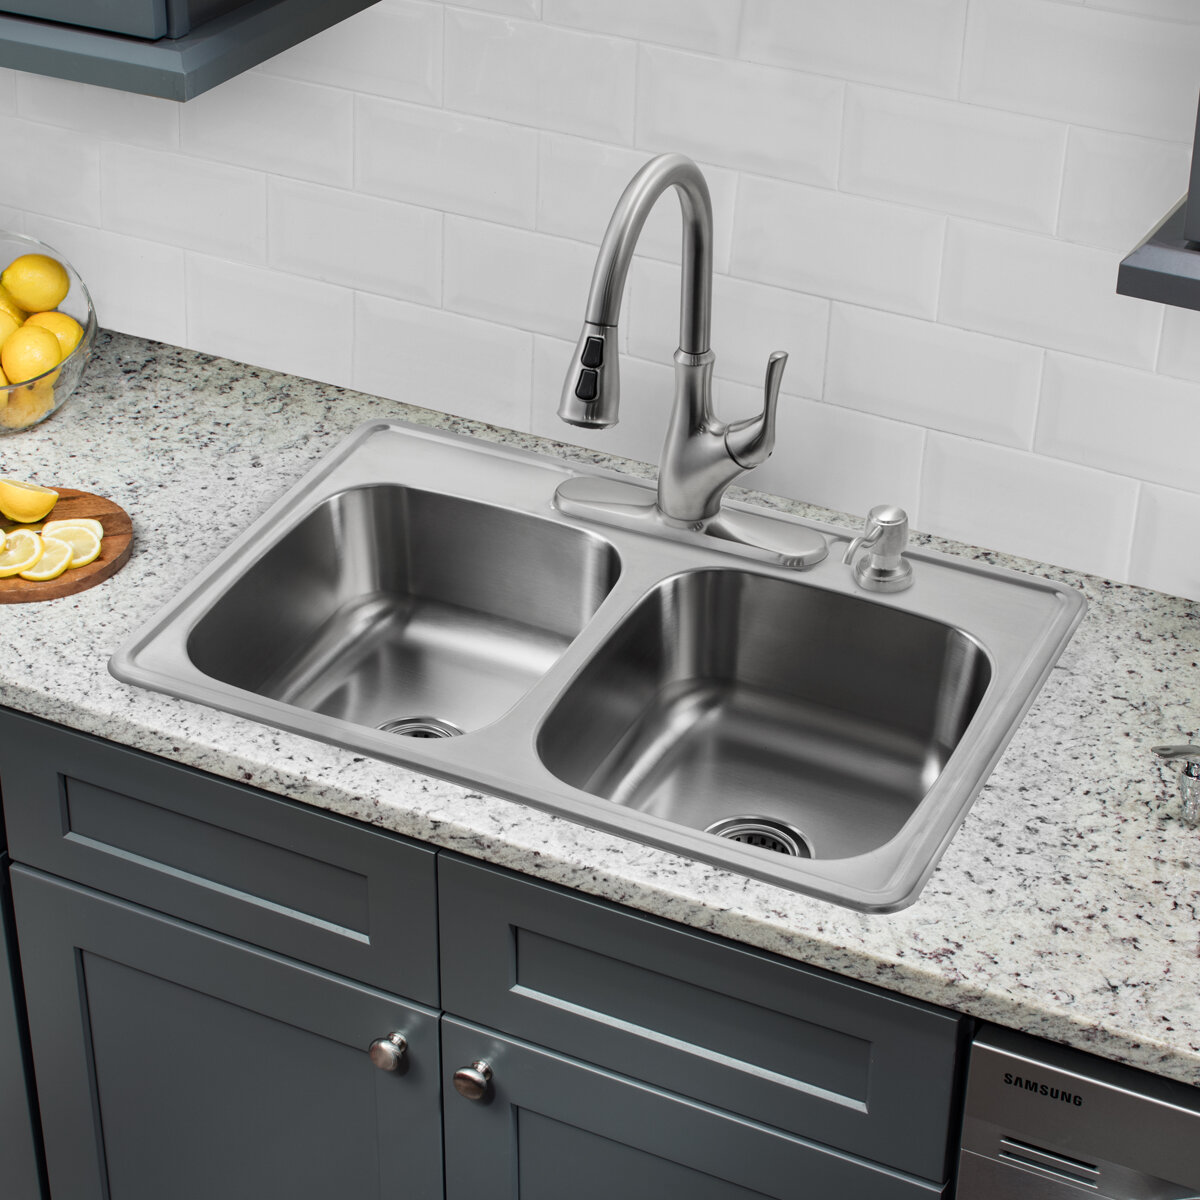 soleil 33 l x 22 w double bowl drop in stainless steel kitchen sink with faucet reviews wayfair - Drop In Kitchen Sink